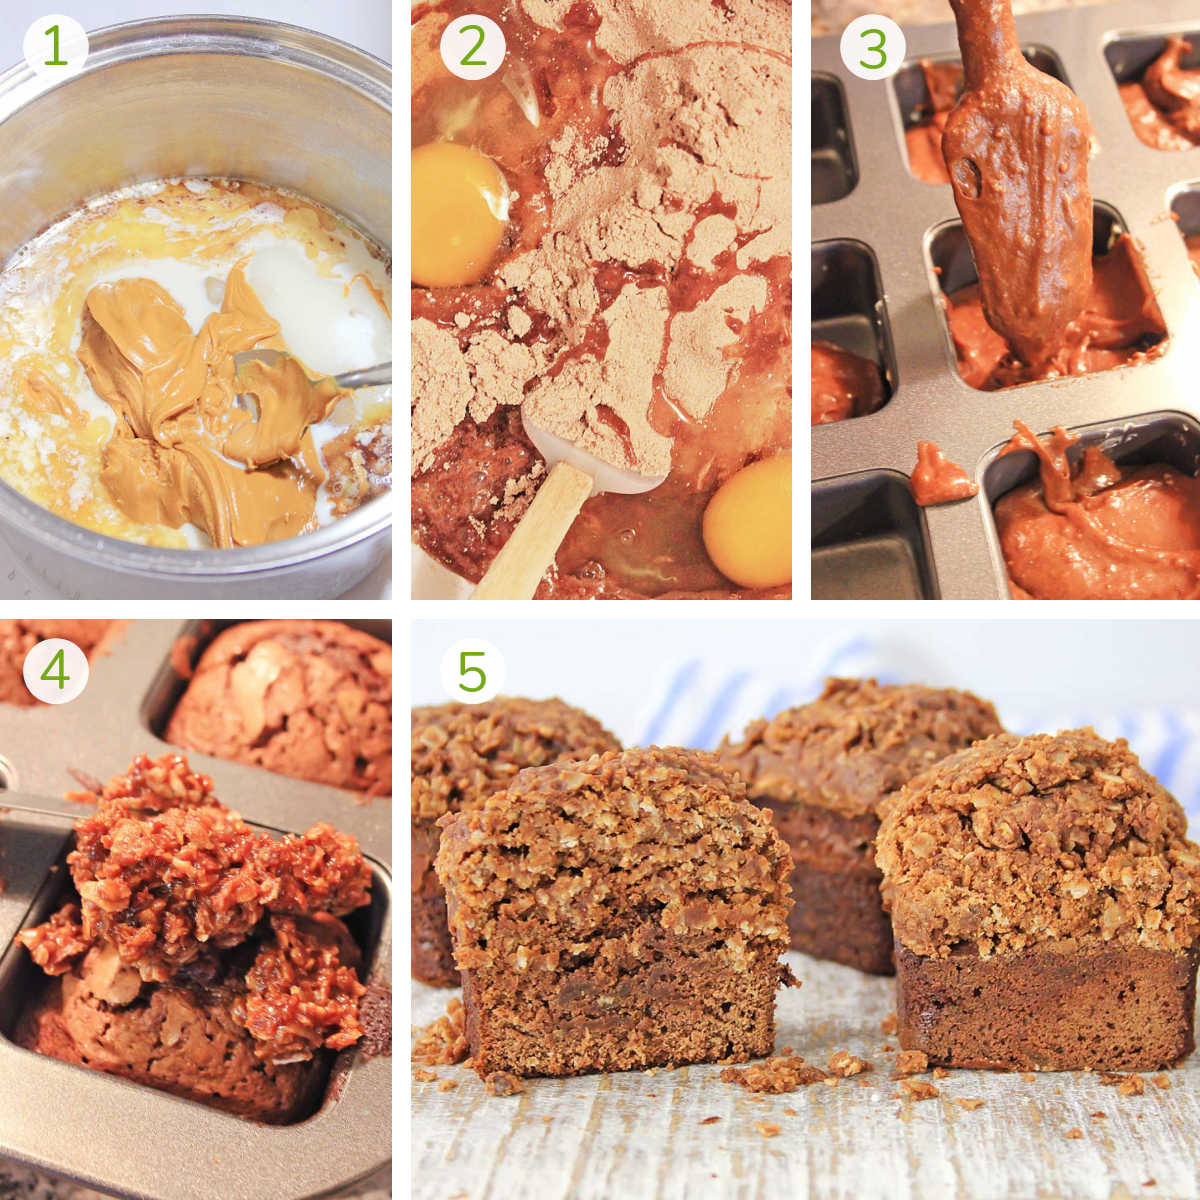 several process photos showing mixing the ingredients, spooning it into muffin tins, baking and topping with cookies.